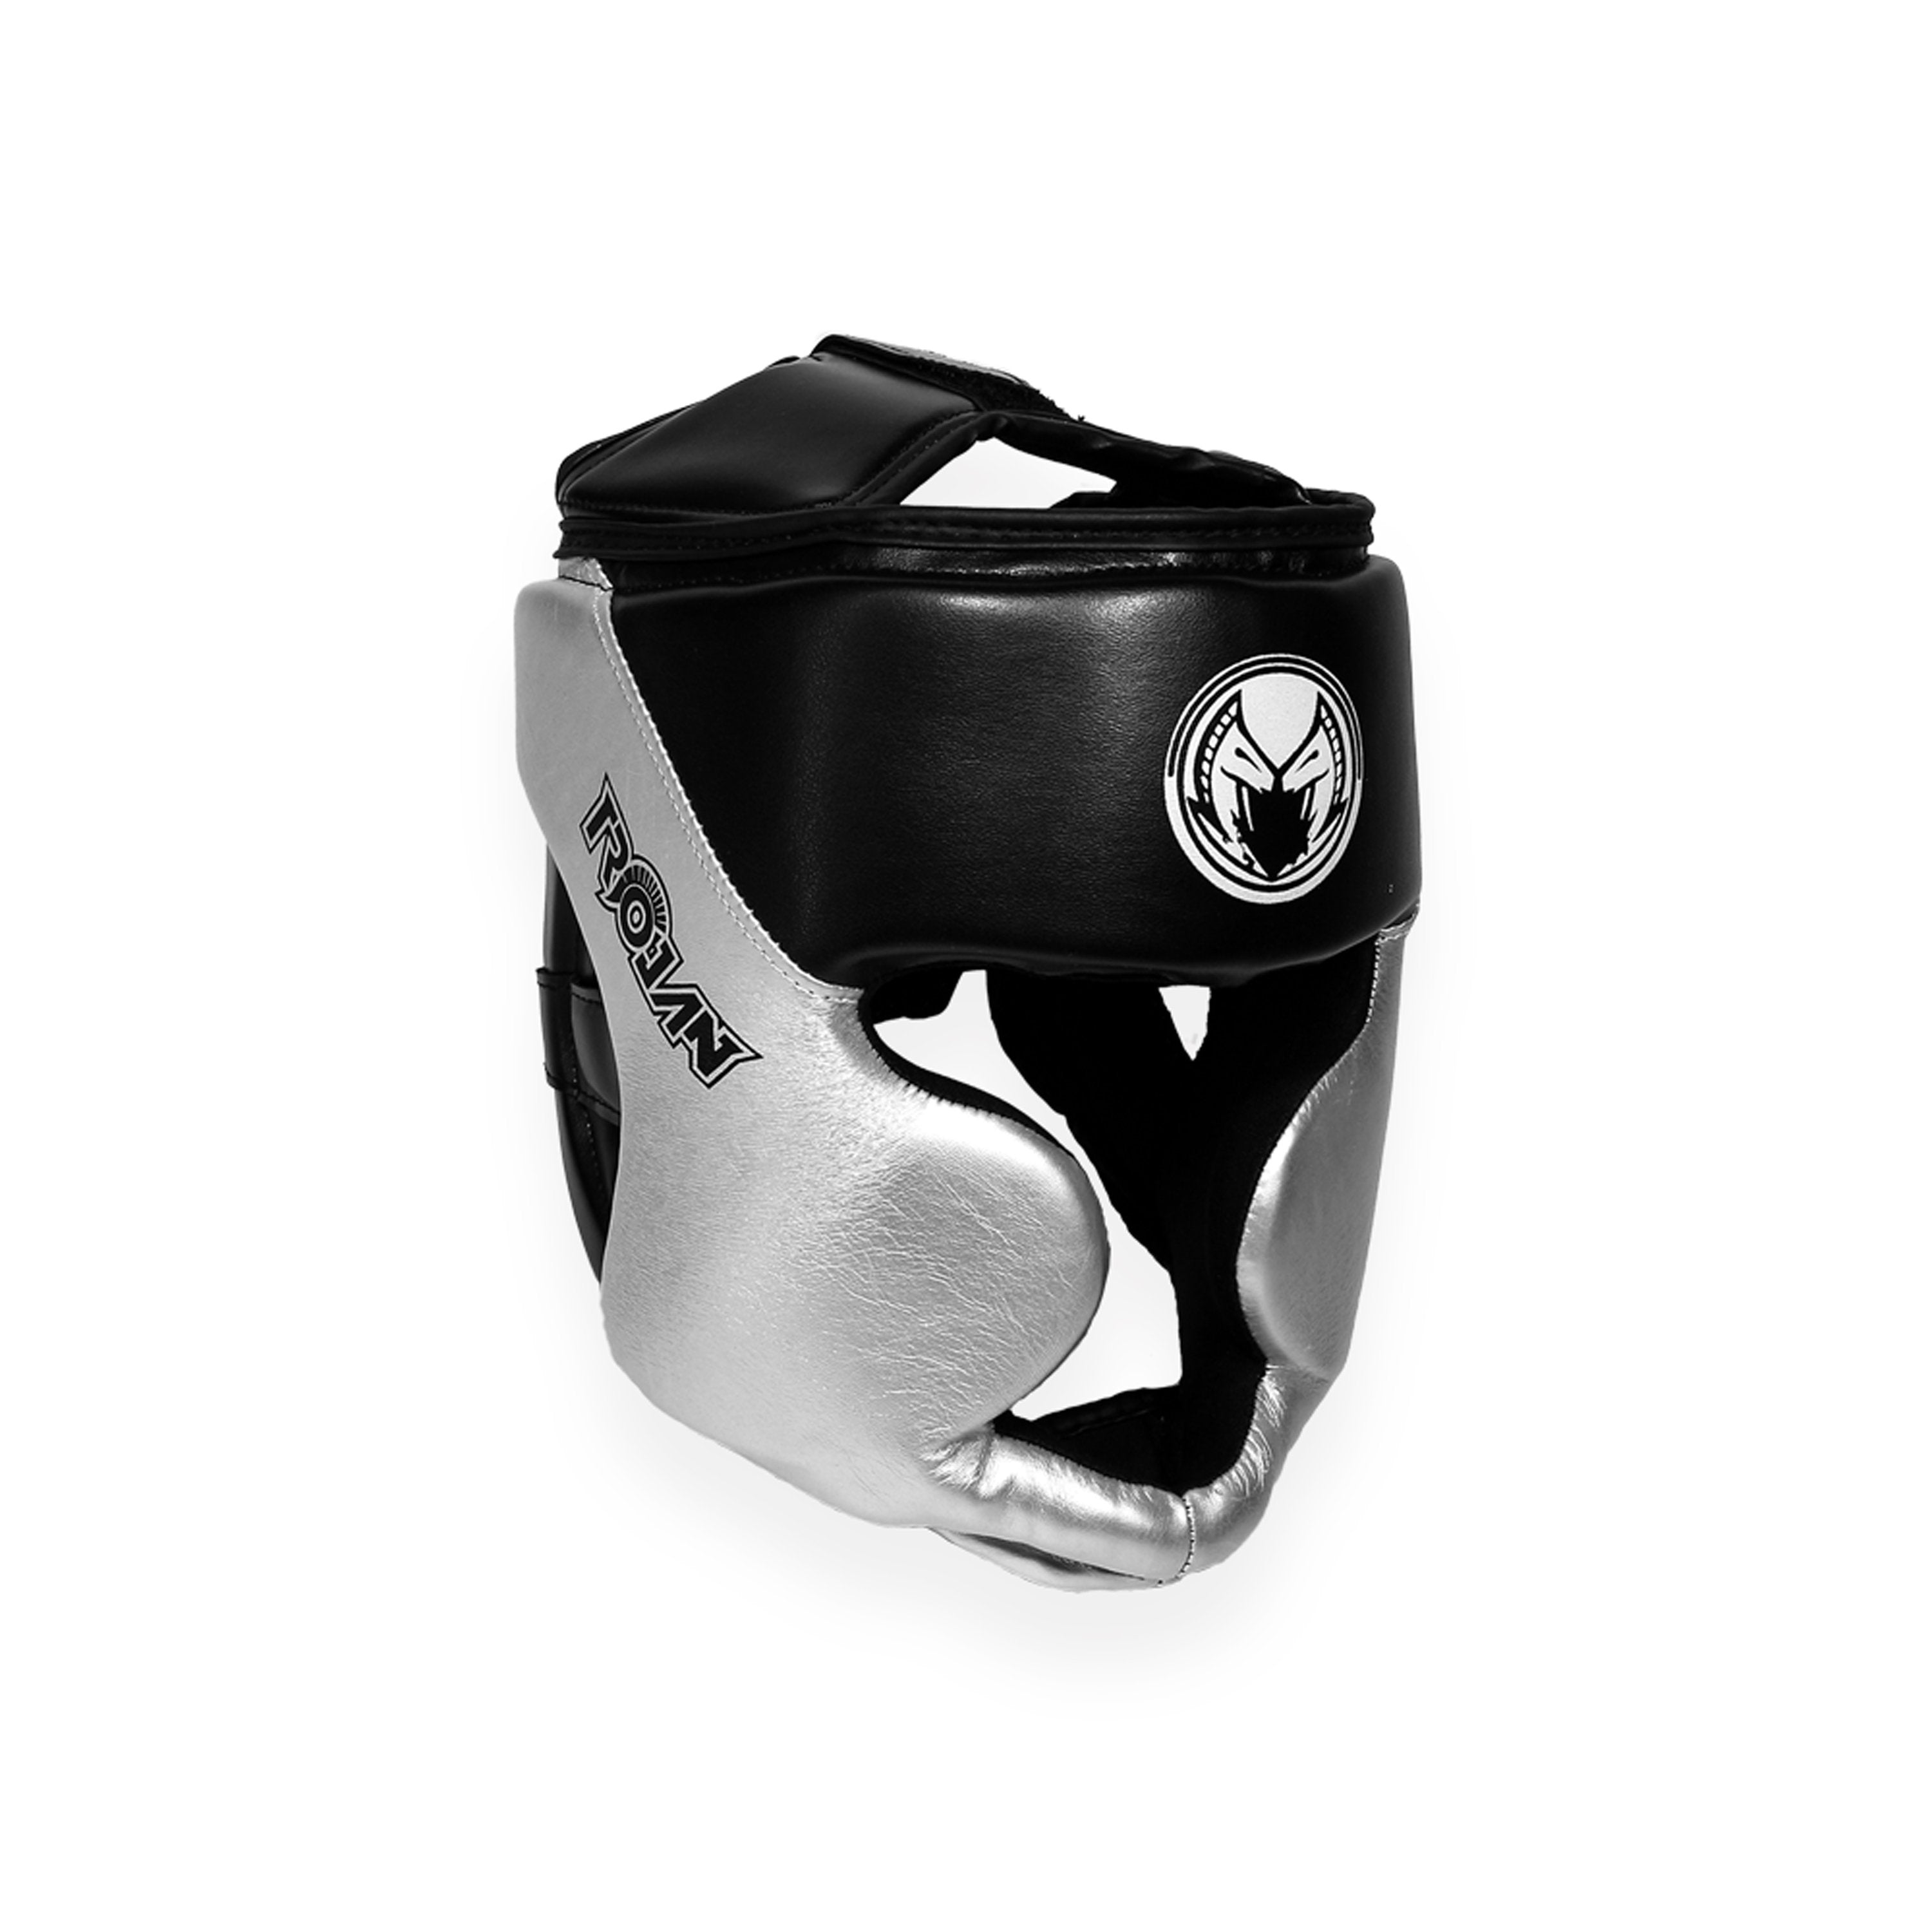 Copy of MEGES S | FULL PROTECTION HEADGEAR - Trojan Fight.com | TrojanFight Boxing